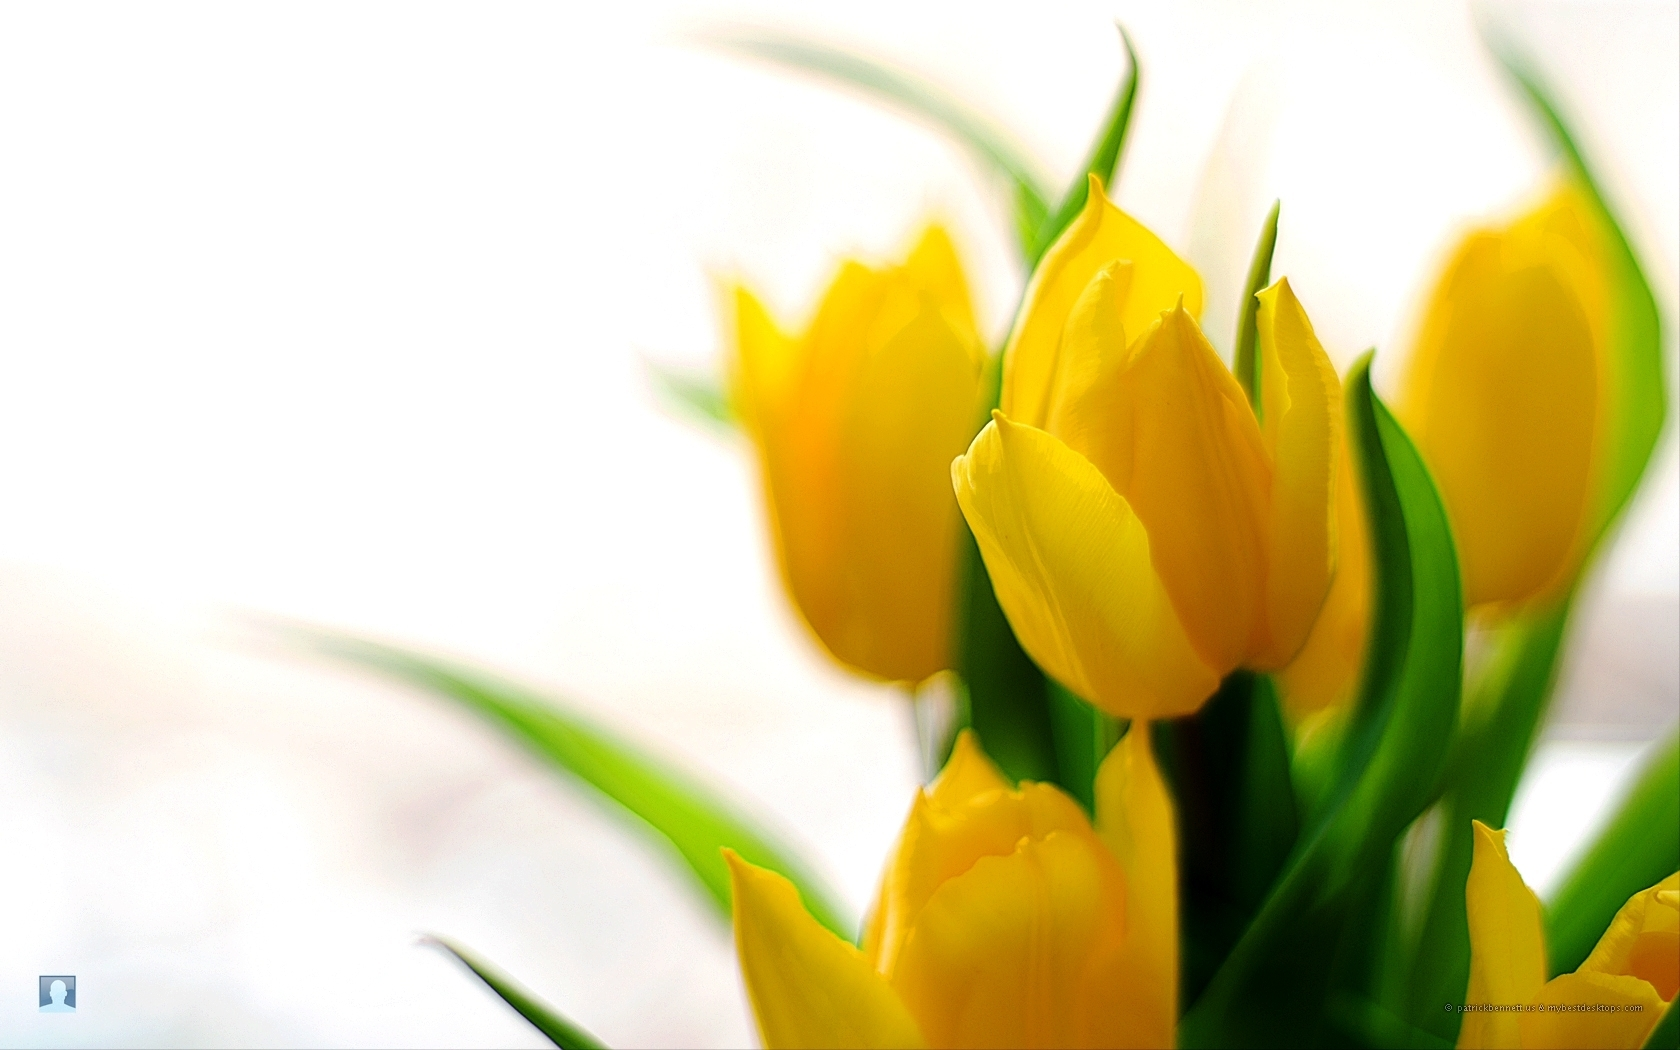 Title : for your desktop: spring flowers wallpapers, 43 top quality spring. Dimension : 1680 x 1050. File Type : JPG/JPEG